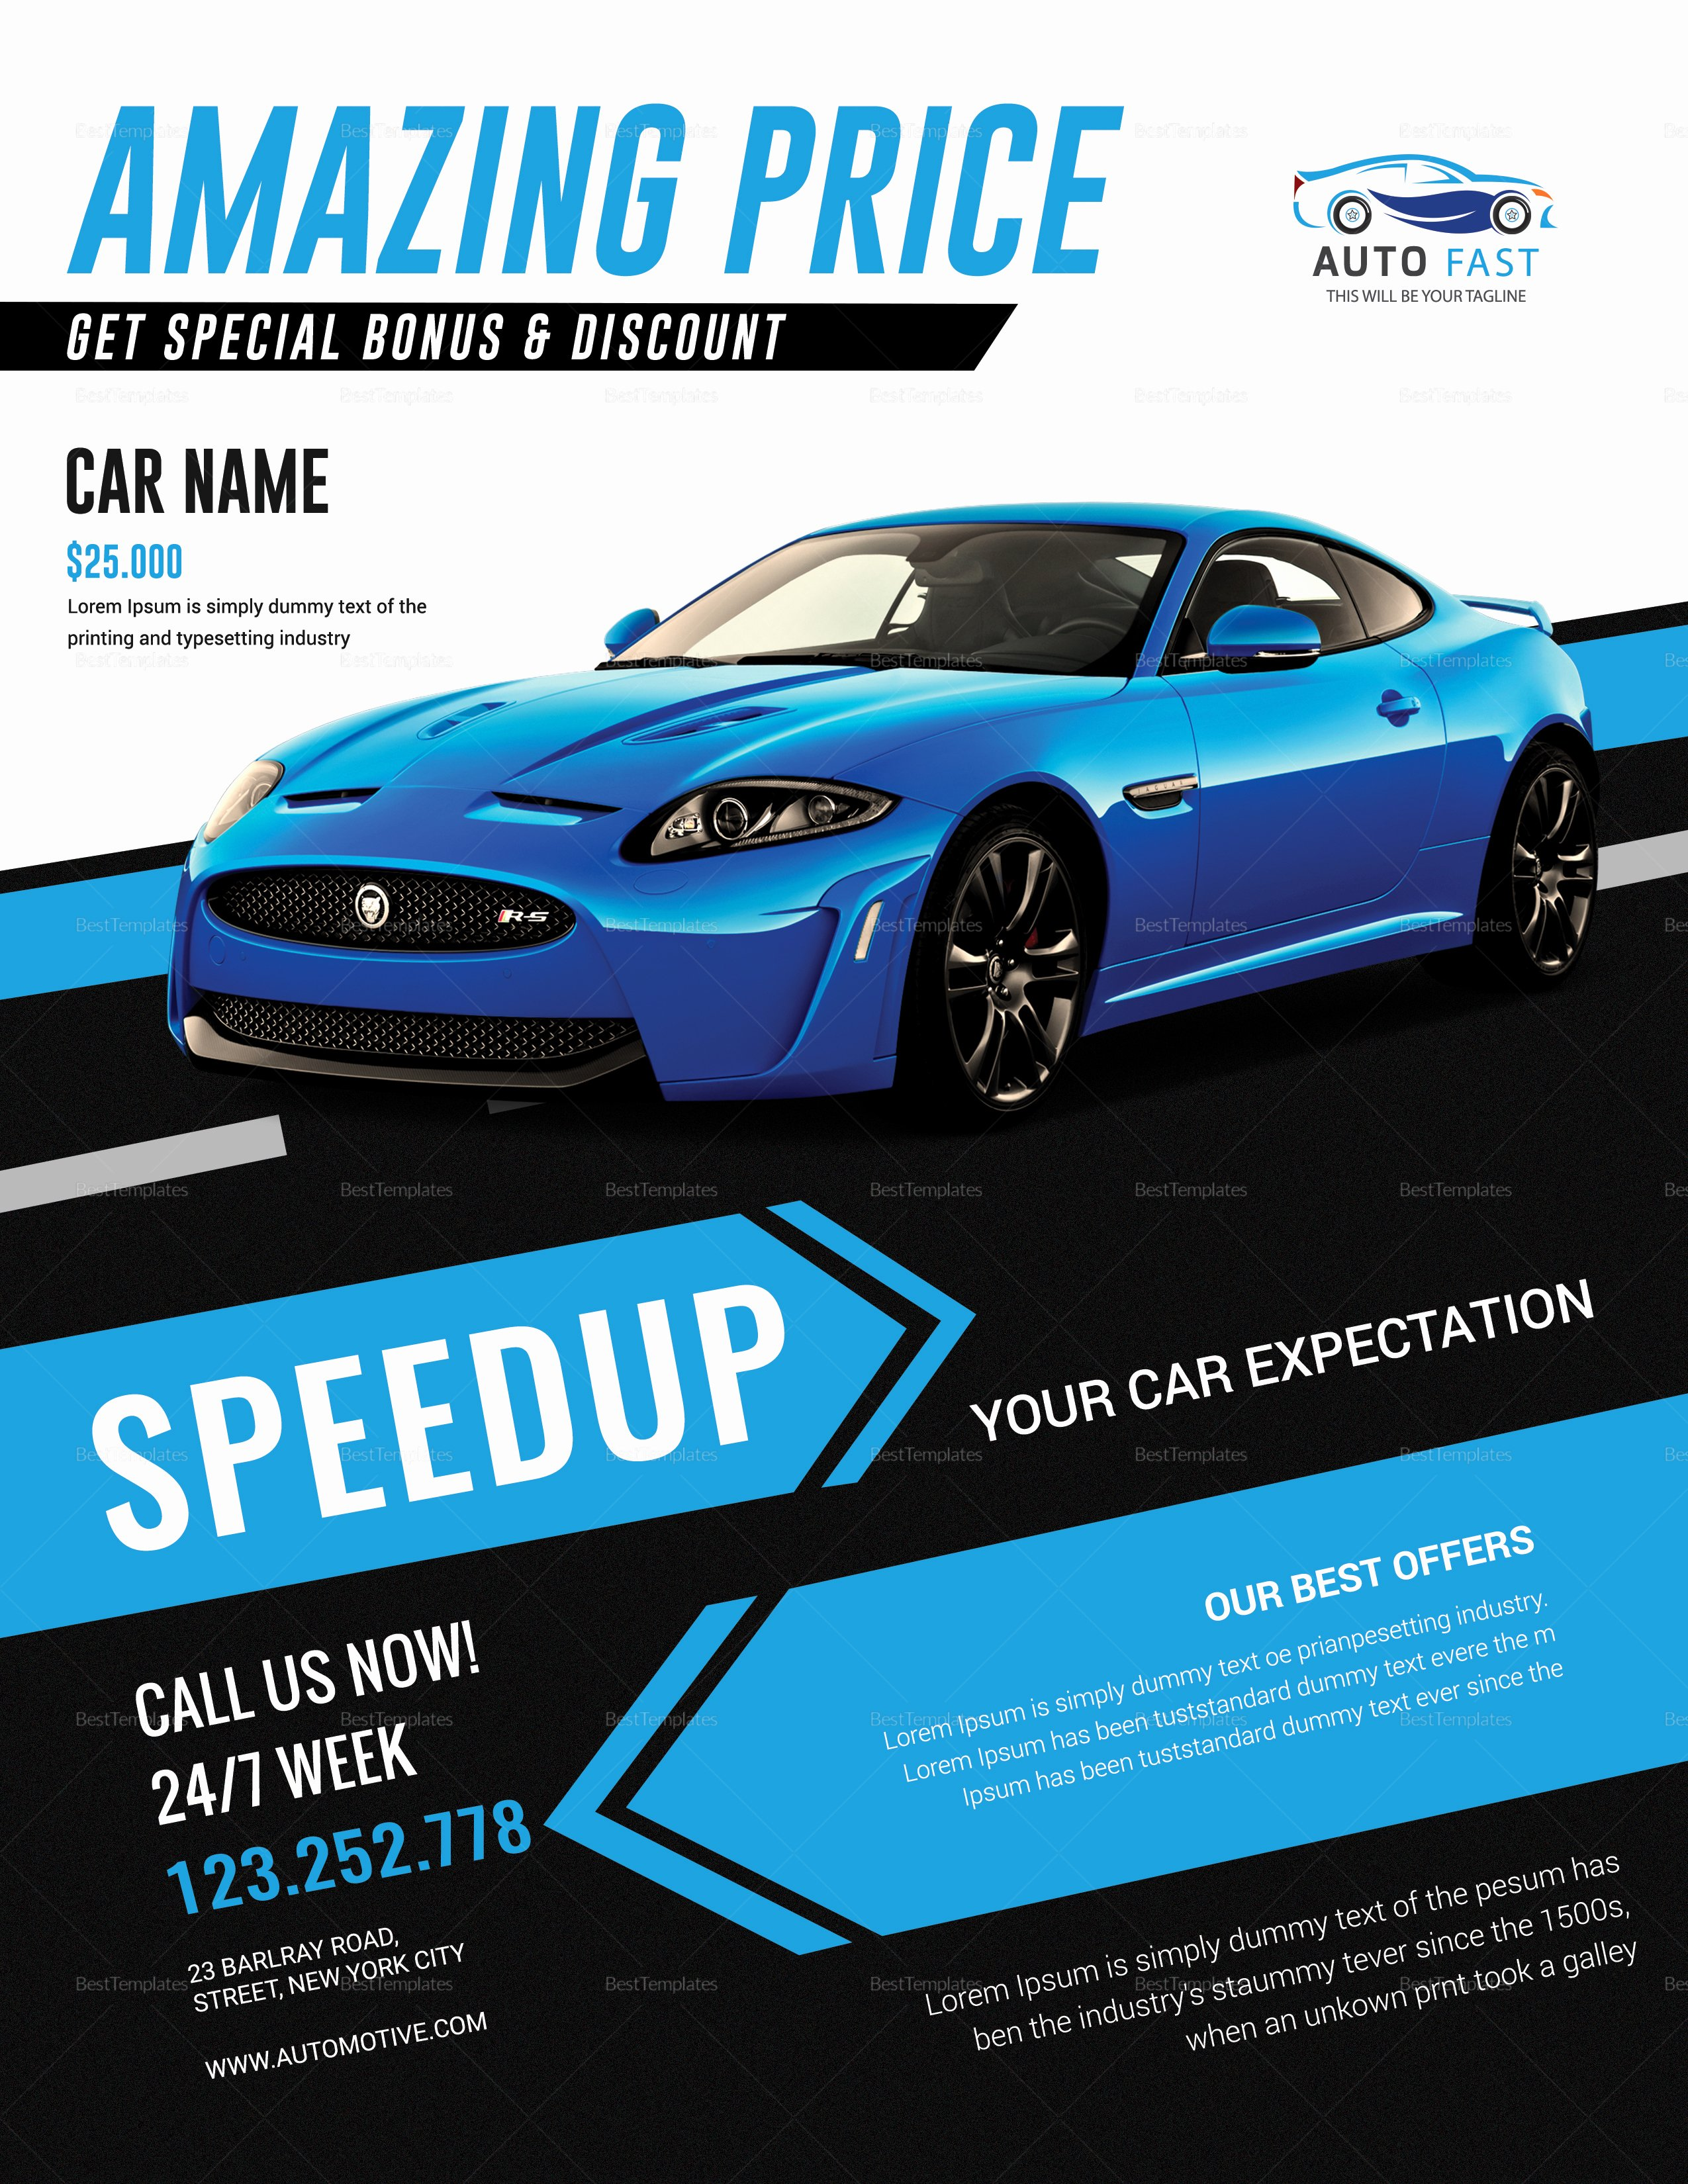 Car for Sale Flyer Template Best Of Car Sales Flyer Design Template In Word Psd Publisher